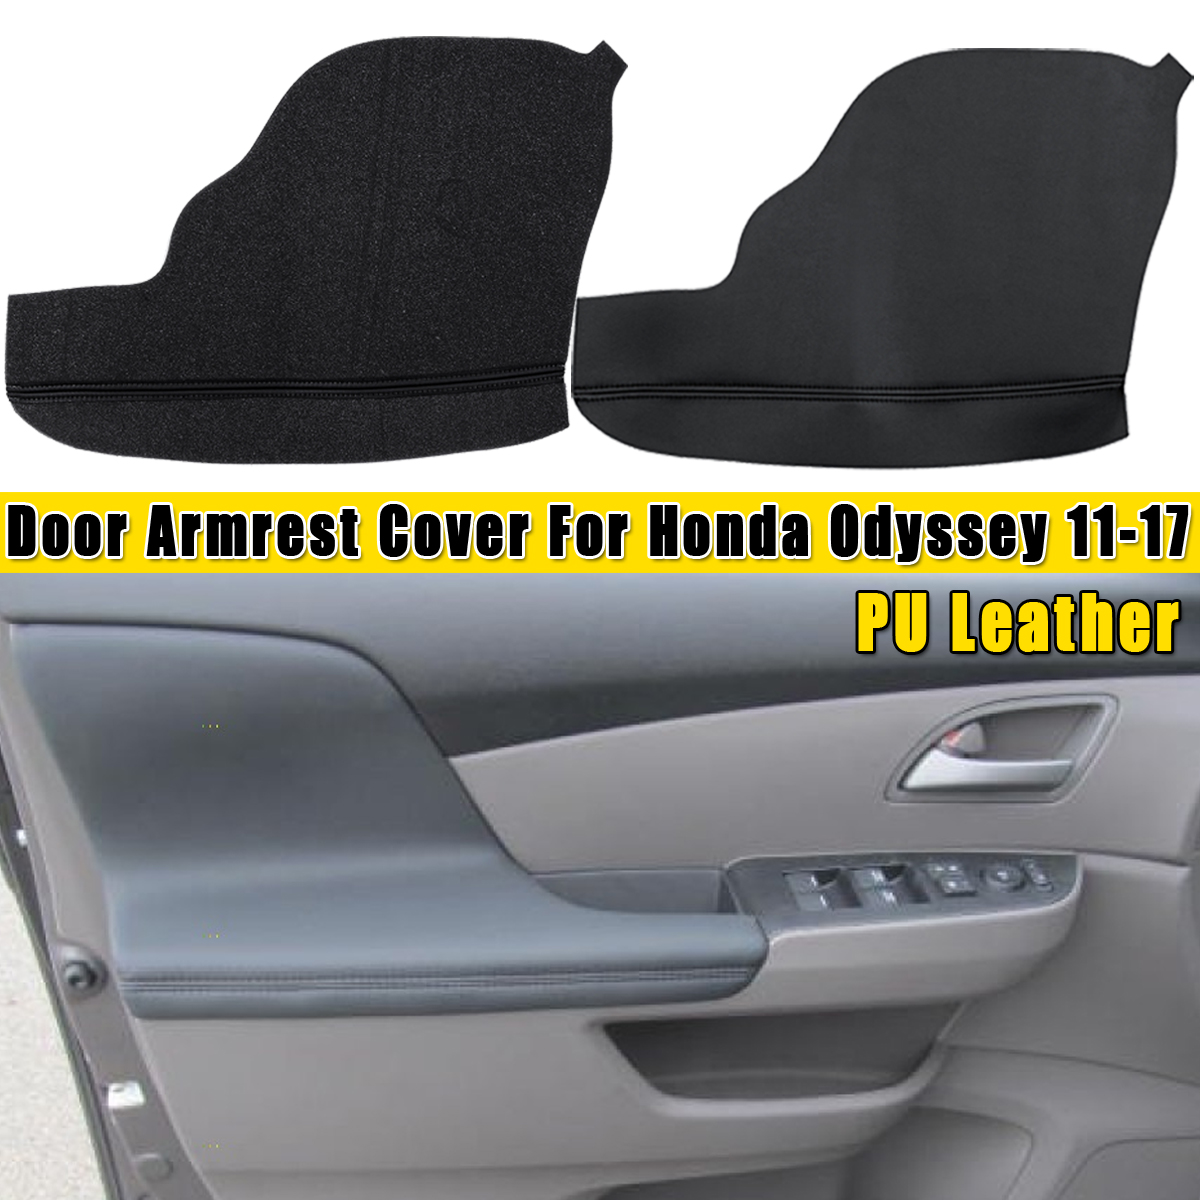 2pcs/set Door Armrest Upholstery Covers Leather For Honda For ODYSSEY 2011 2012 2013 2014 2015 2016 2017 Gray/Black/Beige